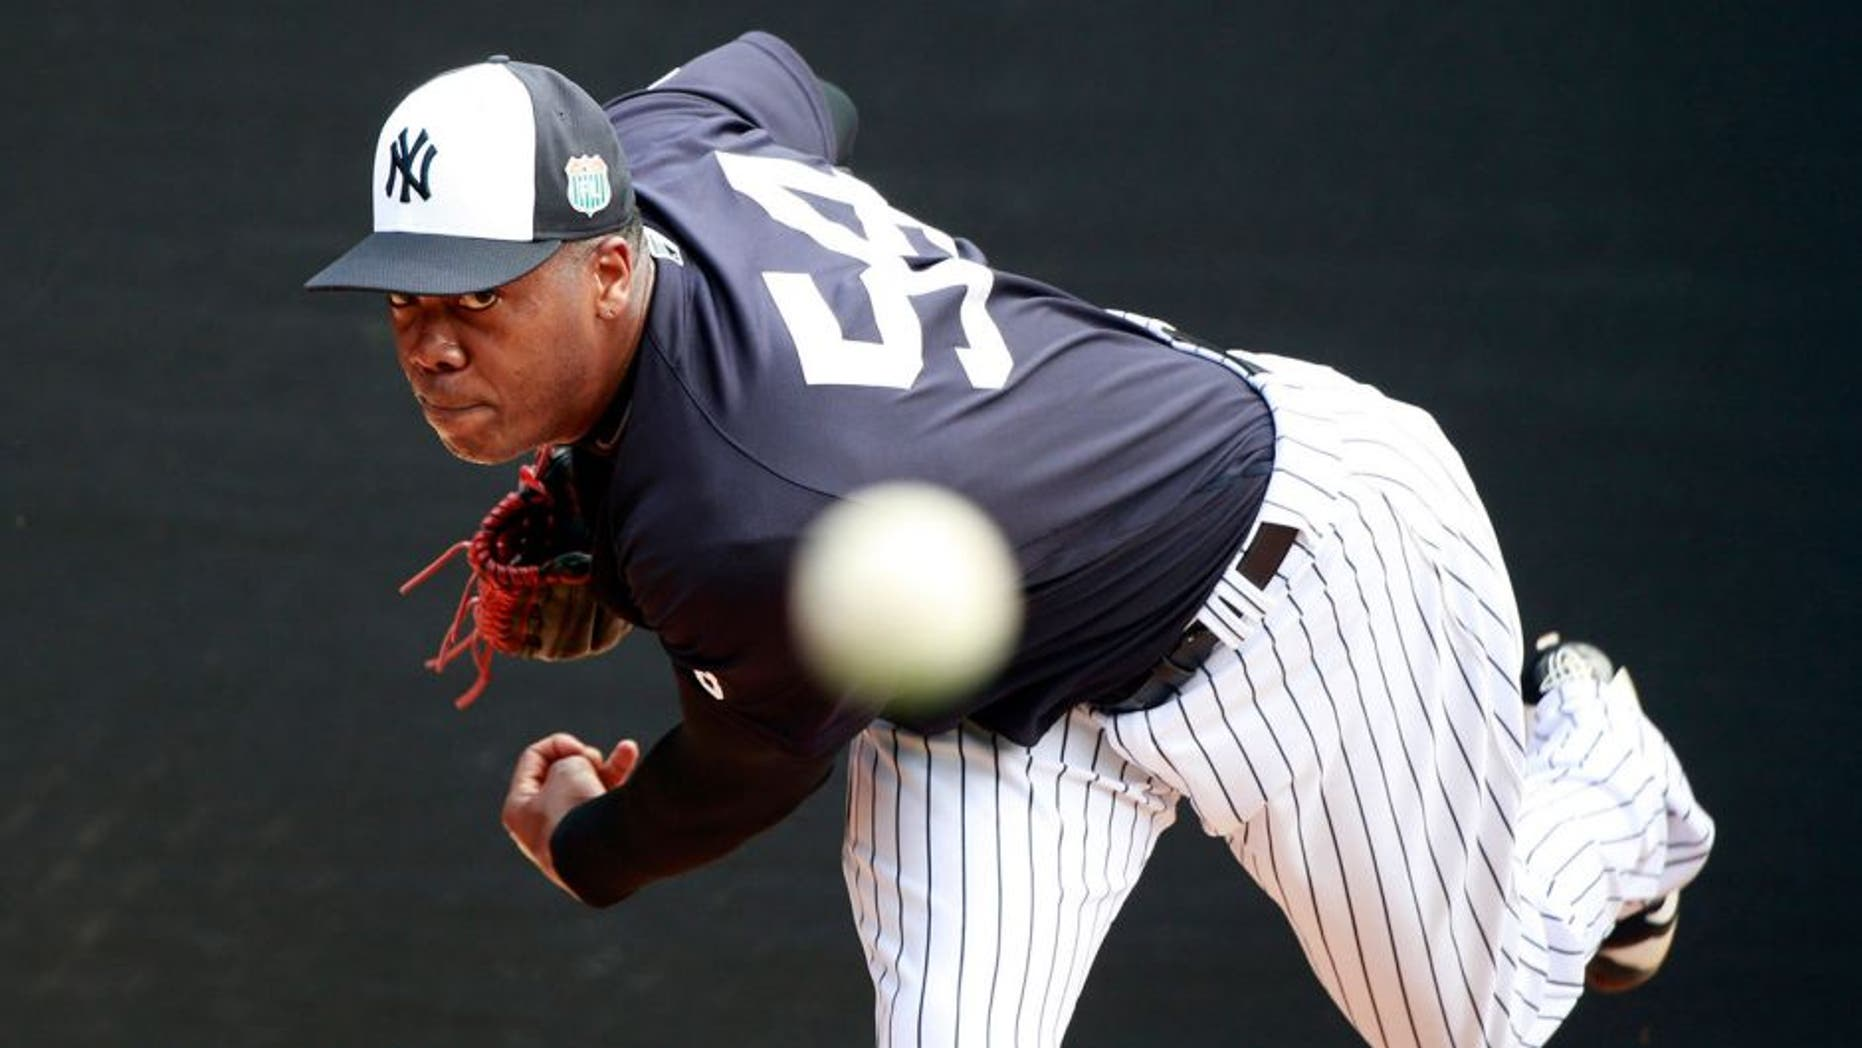 Feb 29, 2016; Tampa, FL, USA; New York Yankees relief pitcher Aroldis Chapman (54) pitches in live batting practice at George M. Steinbrenner Stadium. Mandatory Credit: Butch Dill-USA TODAY Sports